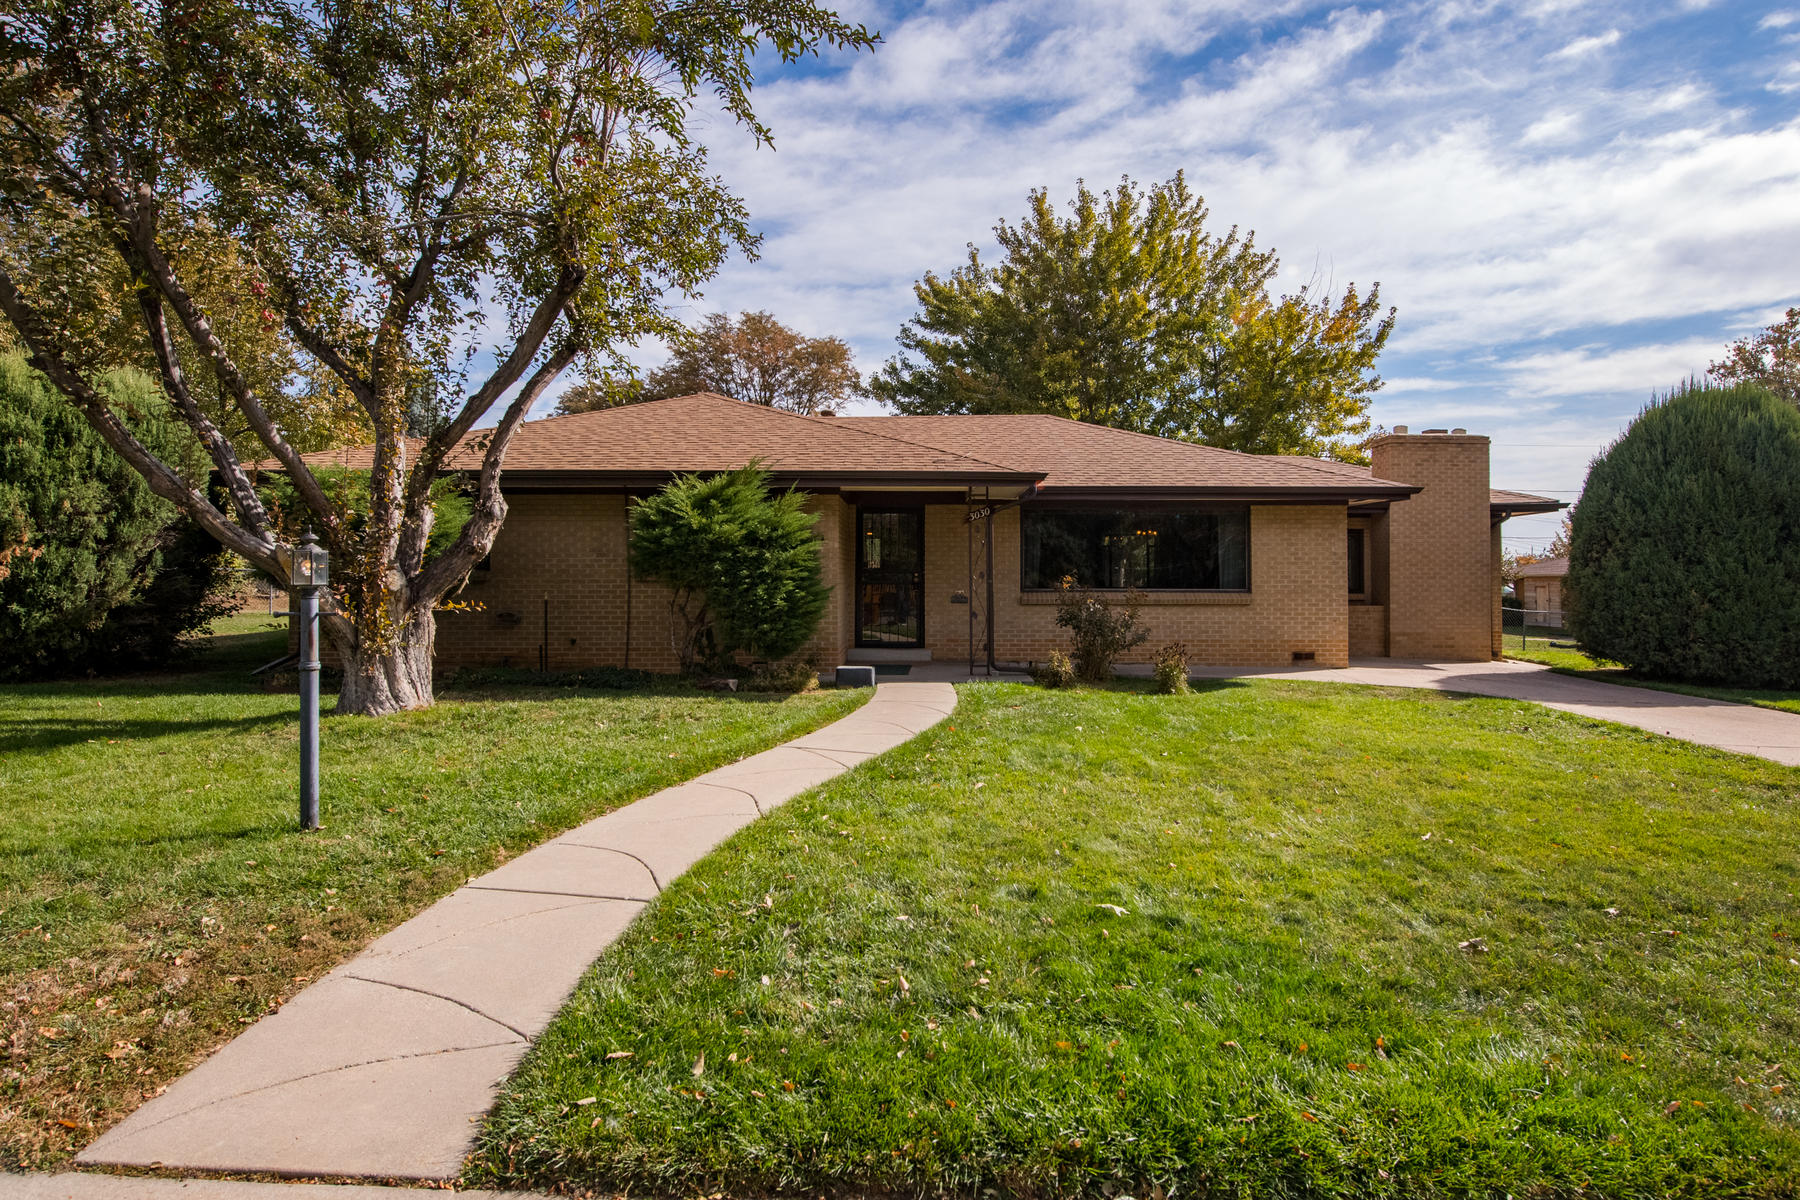 Single Family Homes for Active at Inviting Home Ready For Remodel 3030 Jay St Wheat Ridge, Colorado 80214 United States